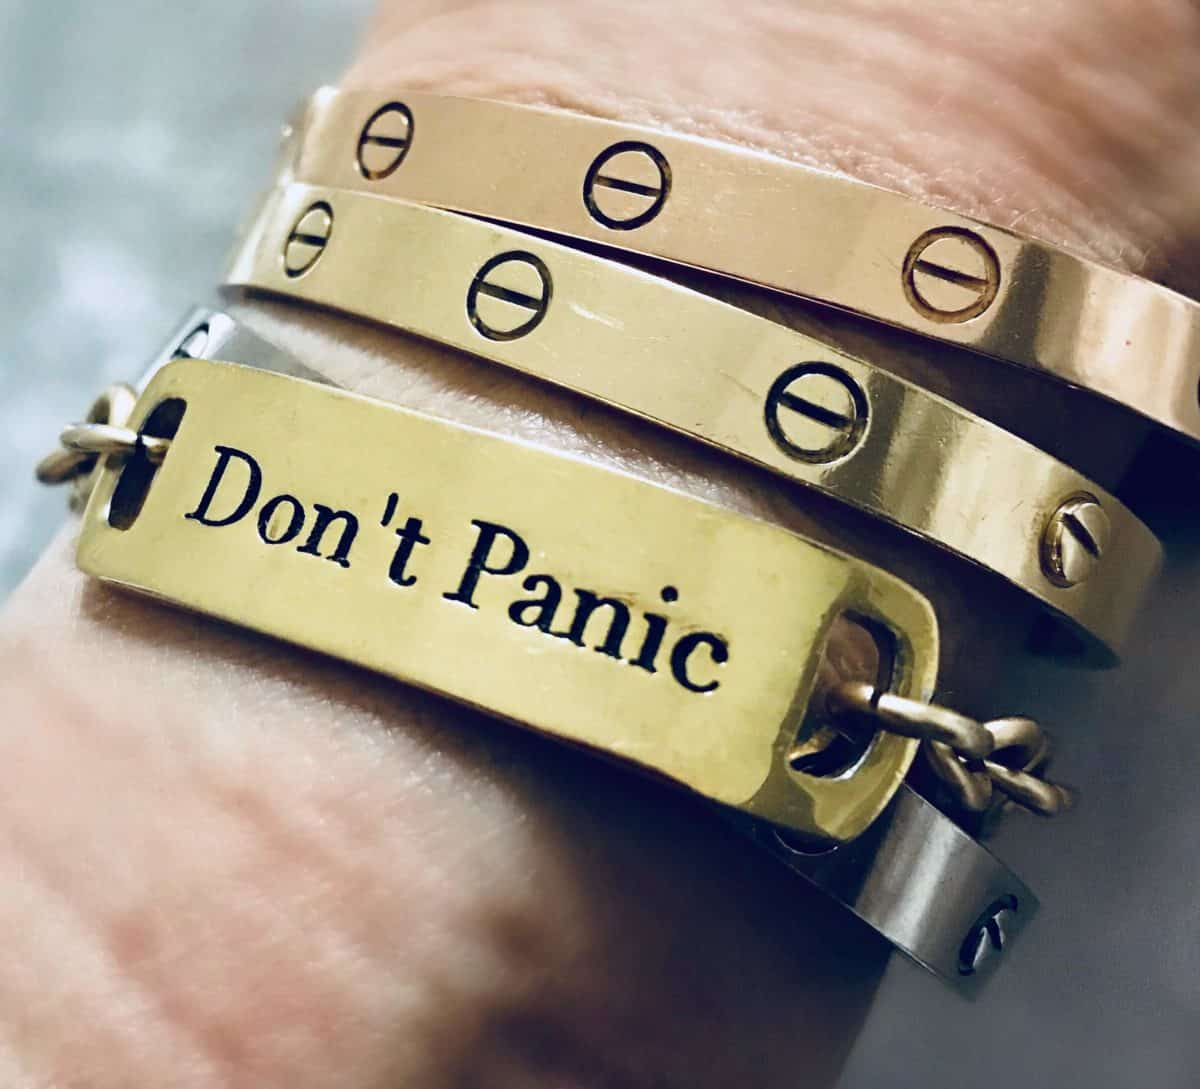 Don't Panic self-help kit